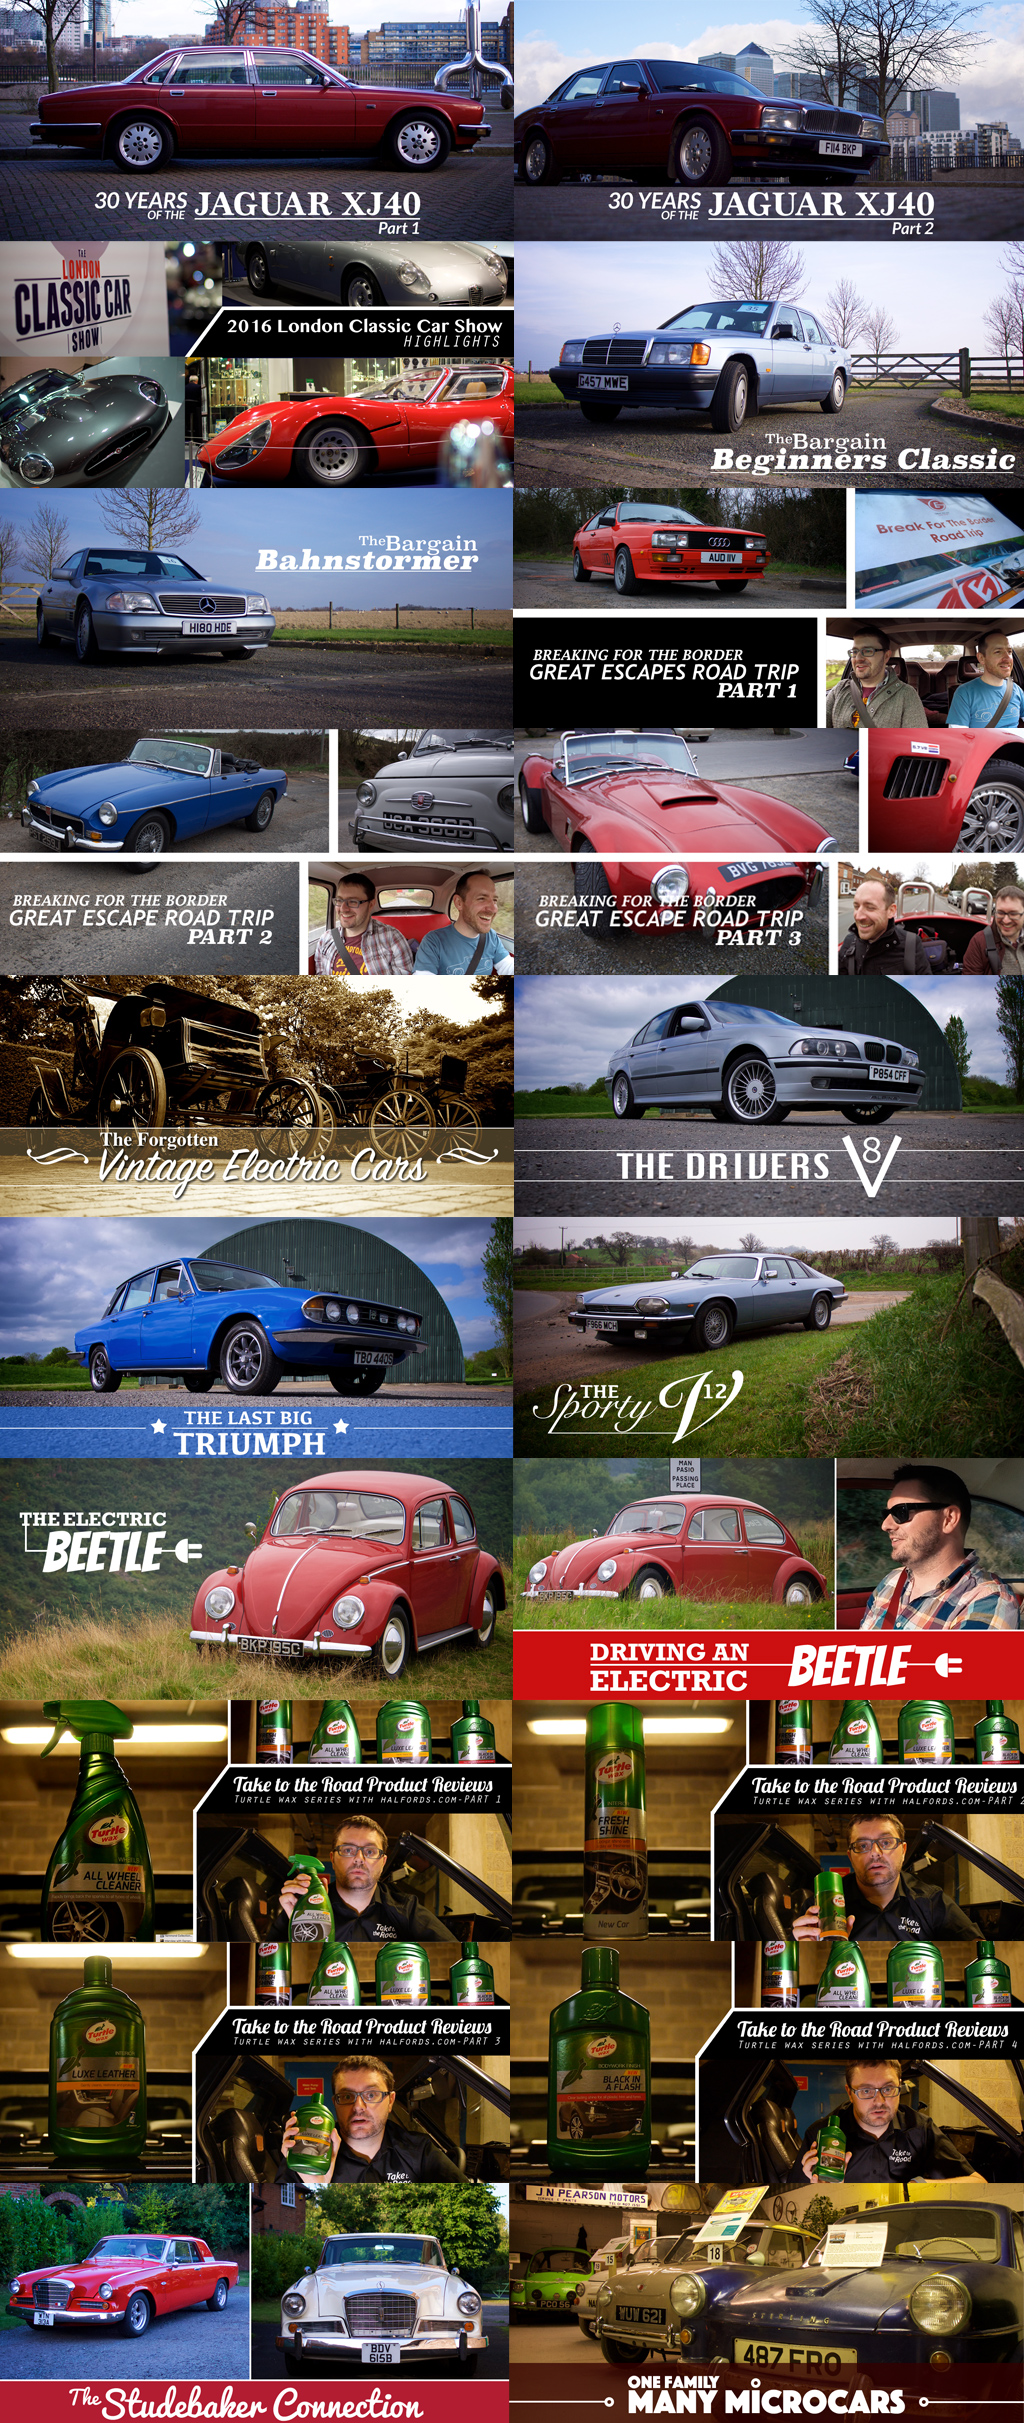 Take to the Road Classic Car Films in 2016